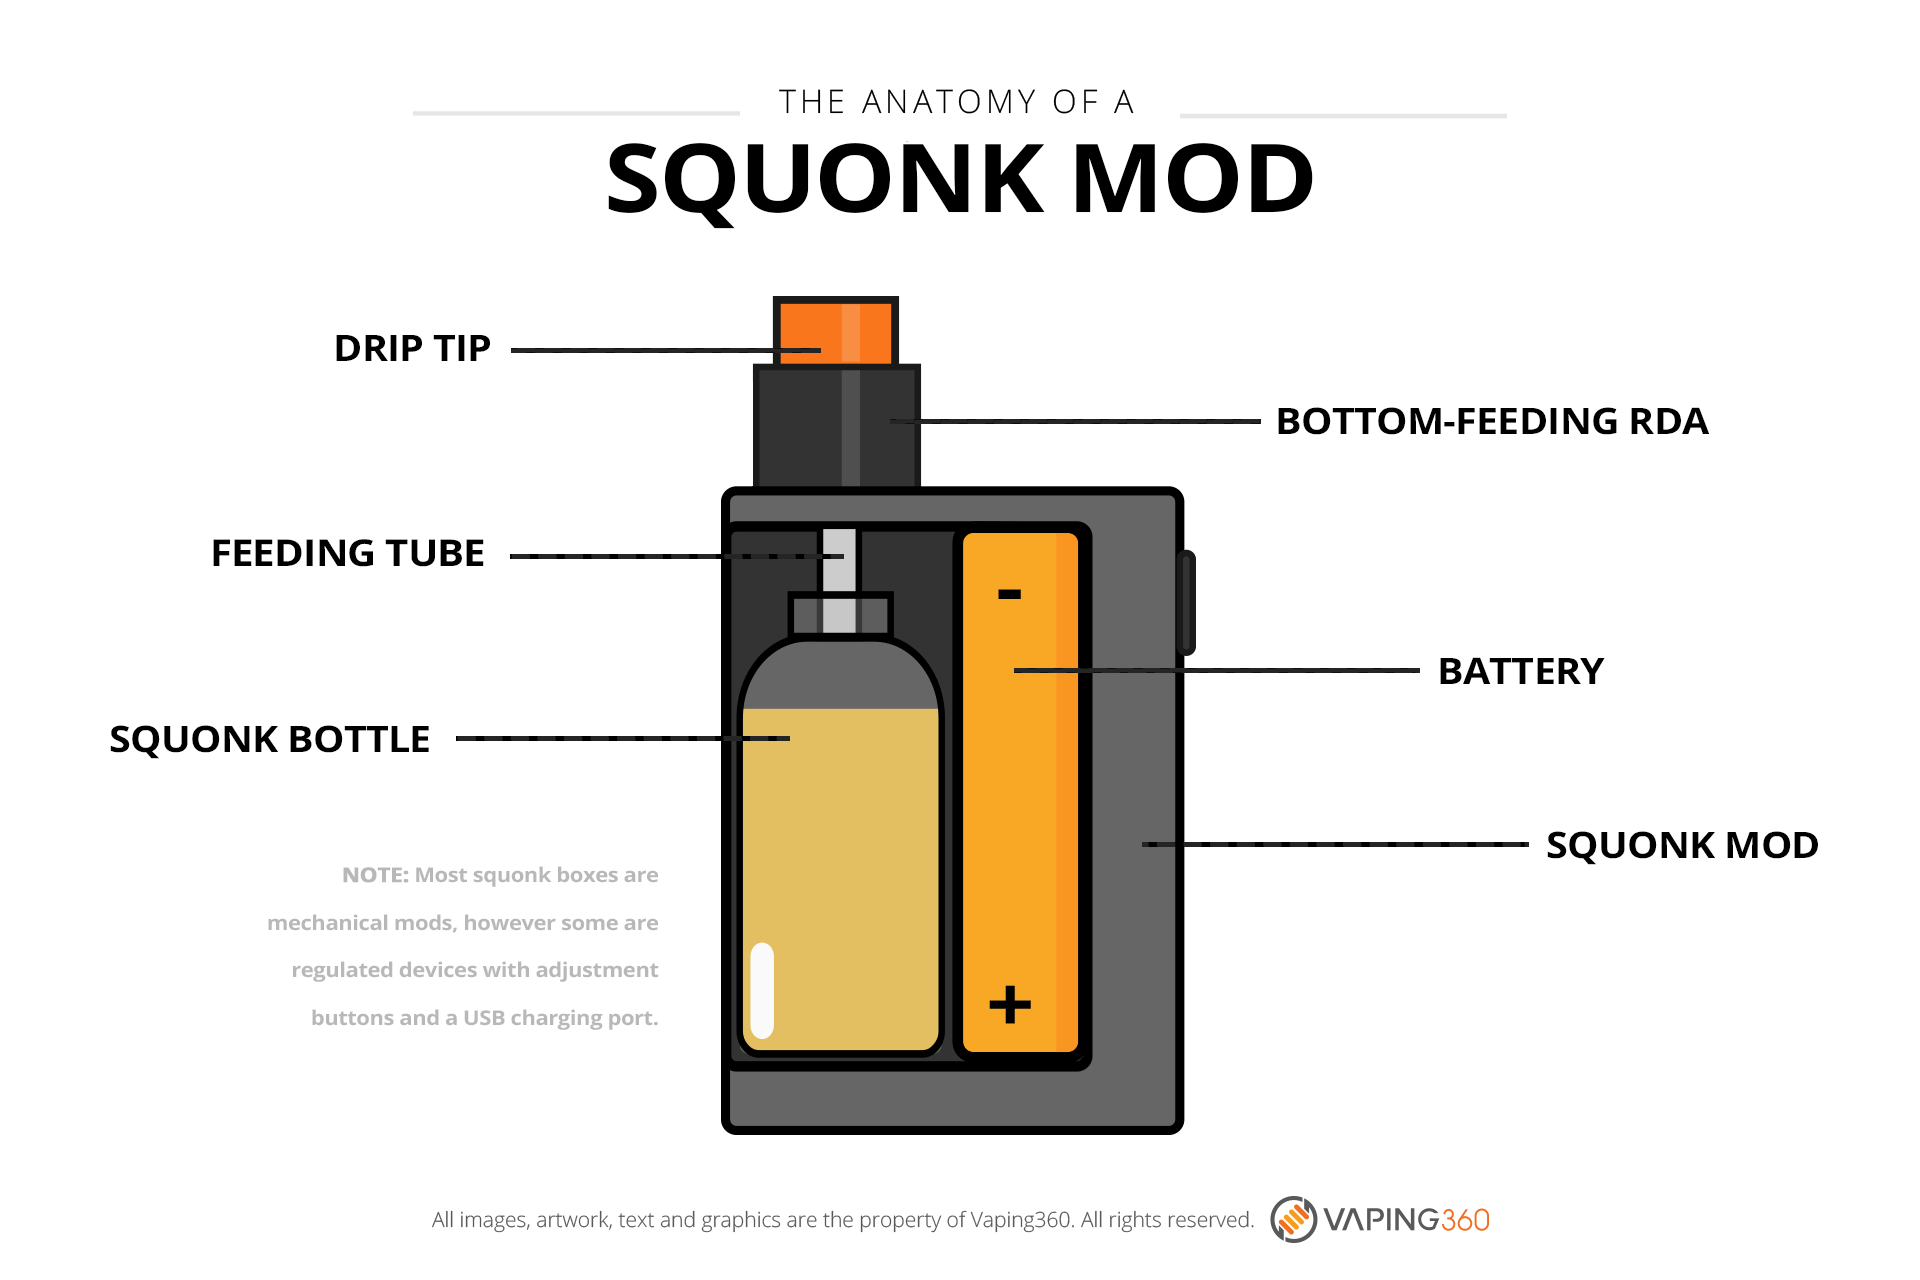 Best Squonk Rda 2021 7 Best Squonk Mods You Can Get + Squonking Guide [Sept. 2020]